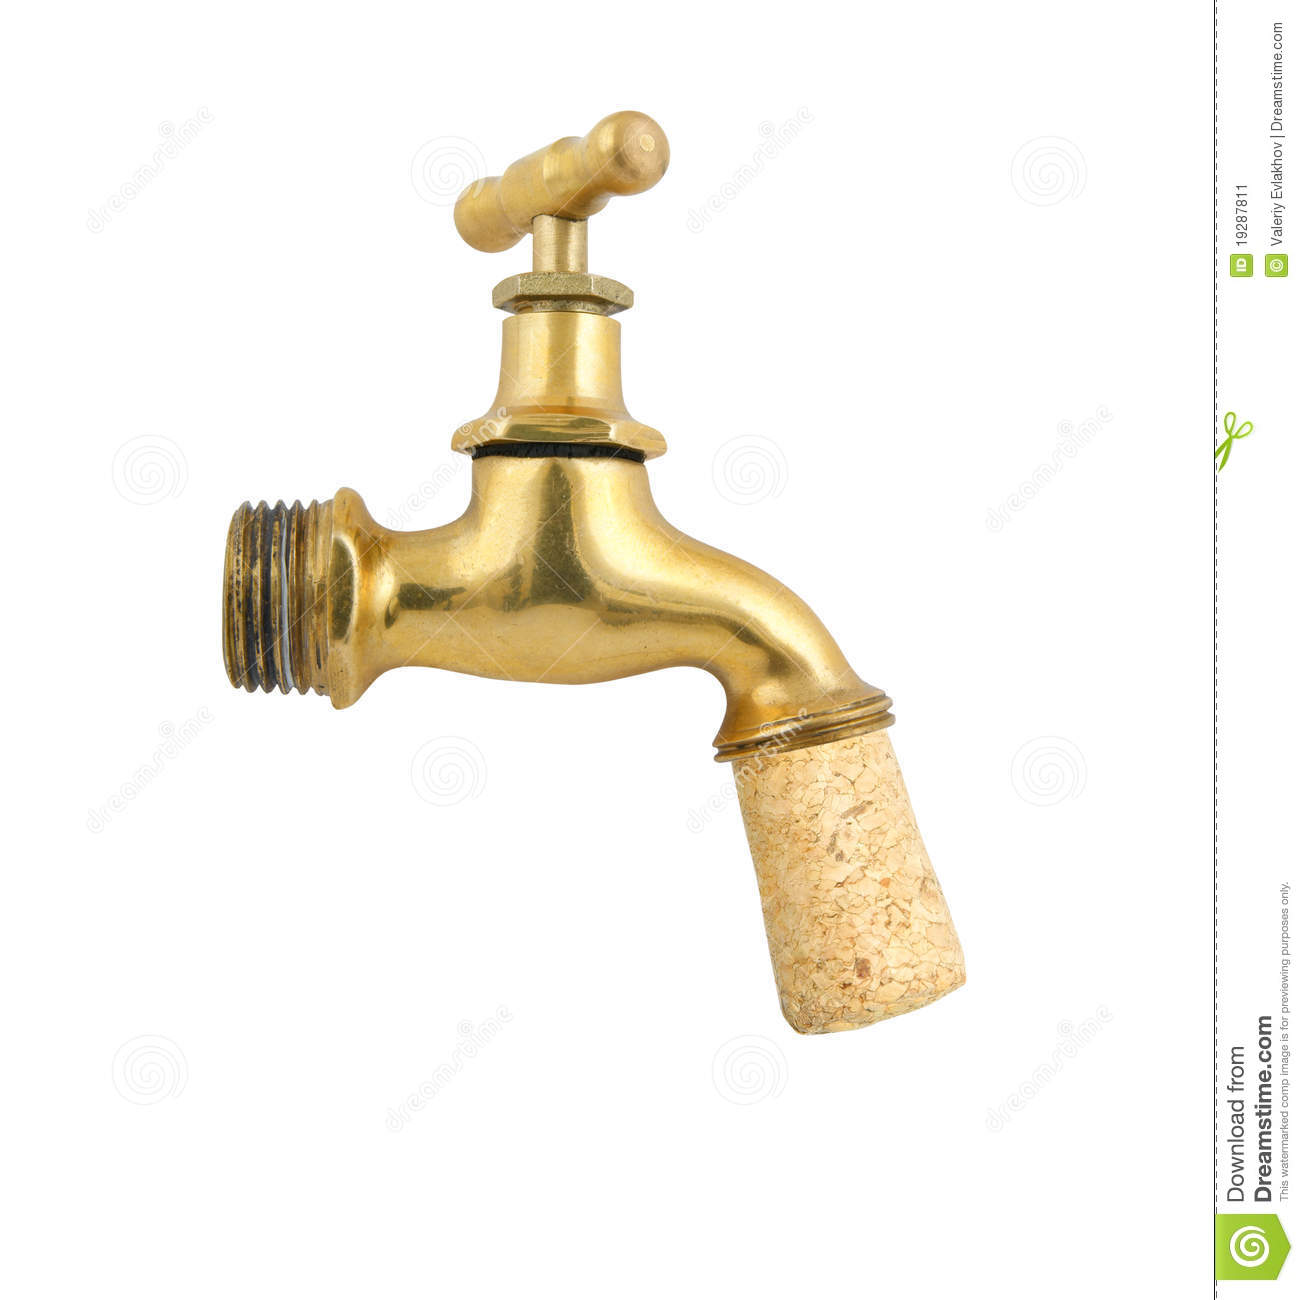 Comfortable Tub Paint Huge Bathtub Repair Contractor Regular How To Paint A Bath Tub Painting The Bathtub Youthful Miracle Method Refinishing WhiteReglazing Shower Old Gold Faucet Closed With Cork Isolated Stock Image   Image ..